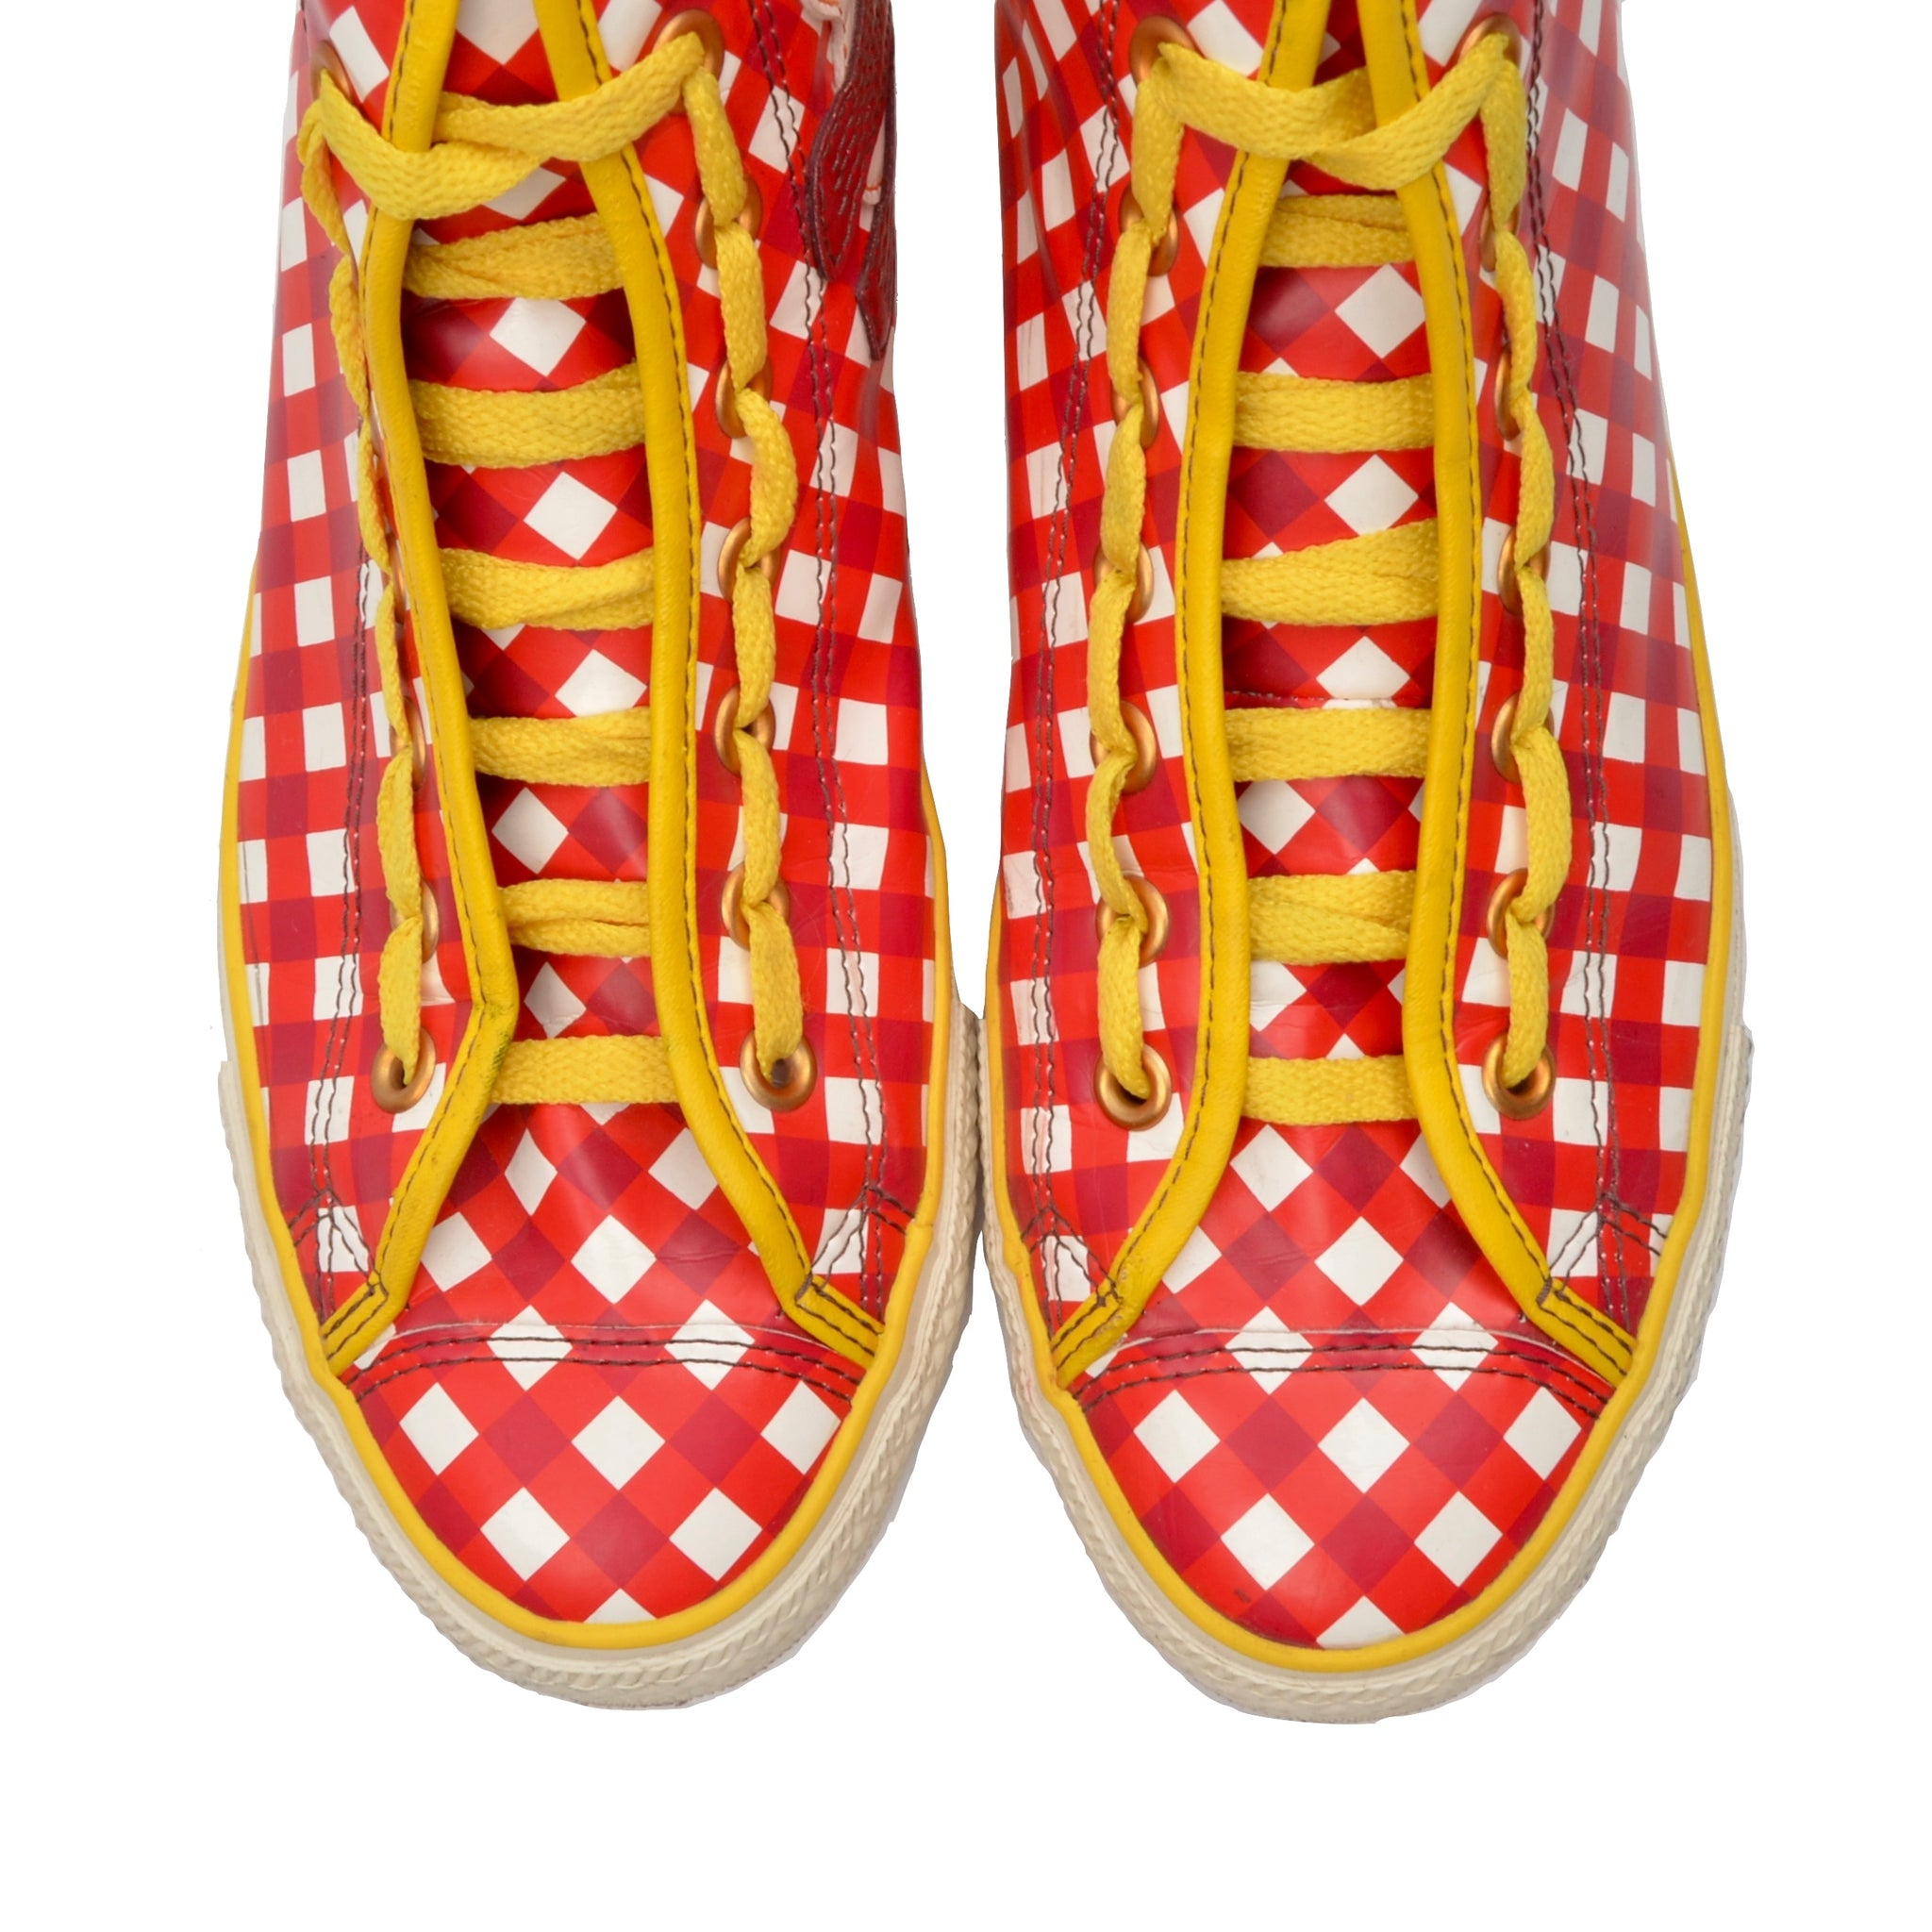 1662eaa4913b09 Converse All Star Awesome Breakfast Shoes Size 41 - Red   Yellow ...